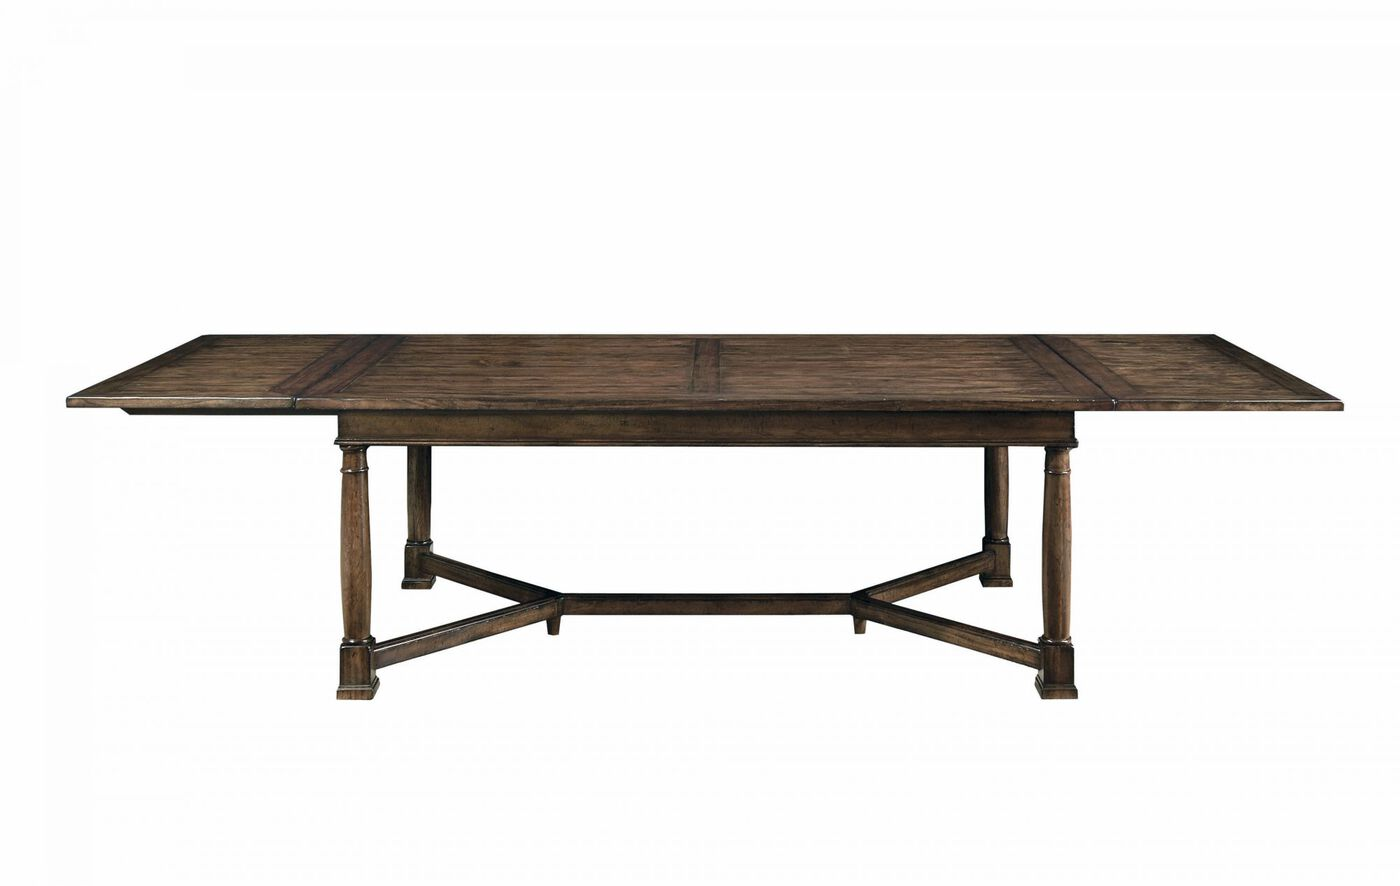 Mathis Brothers Dining Room Table home decor Xshareus : BHT 322047224 from www.xshare.us size 1400 x 886 jpeg 50kB